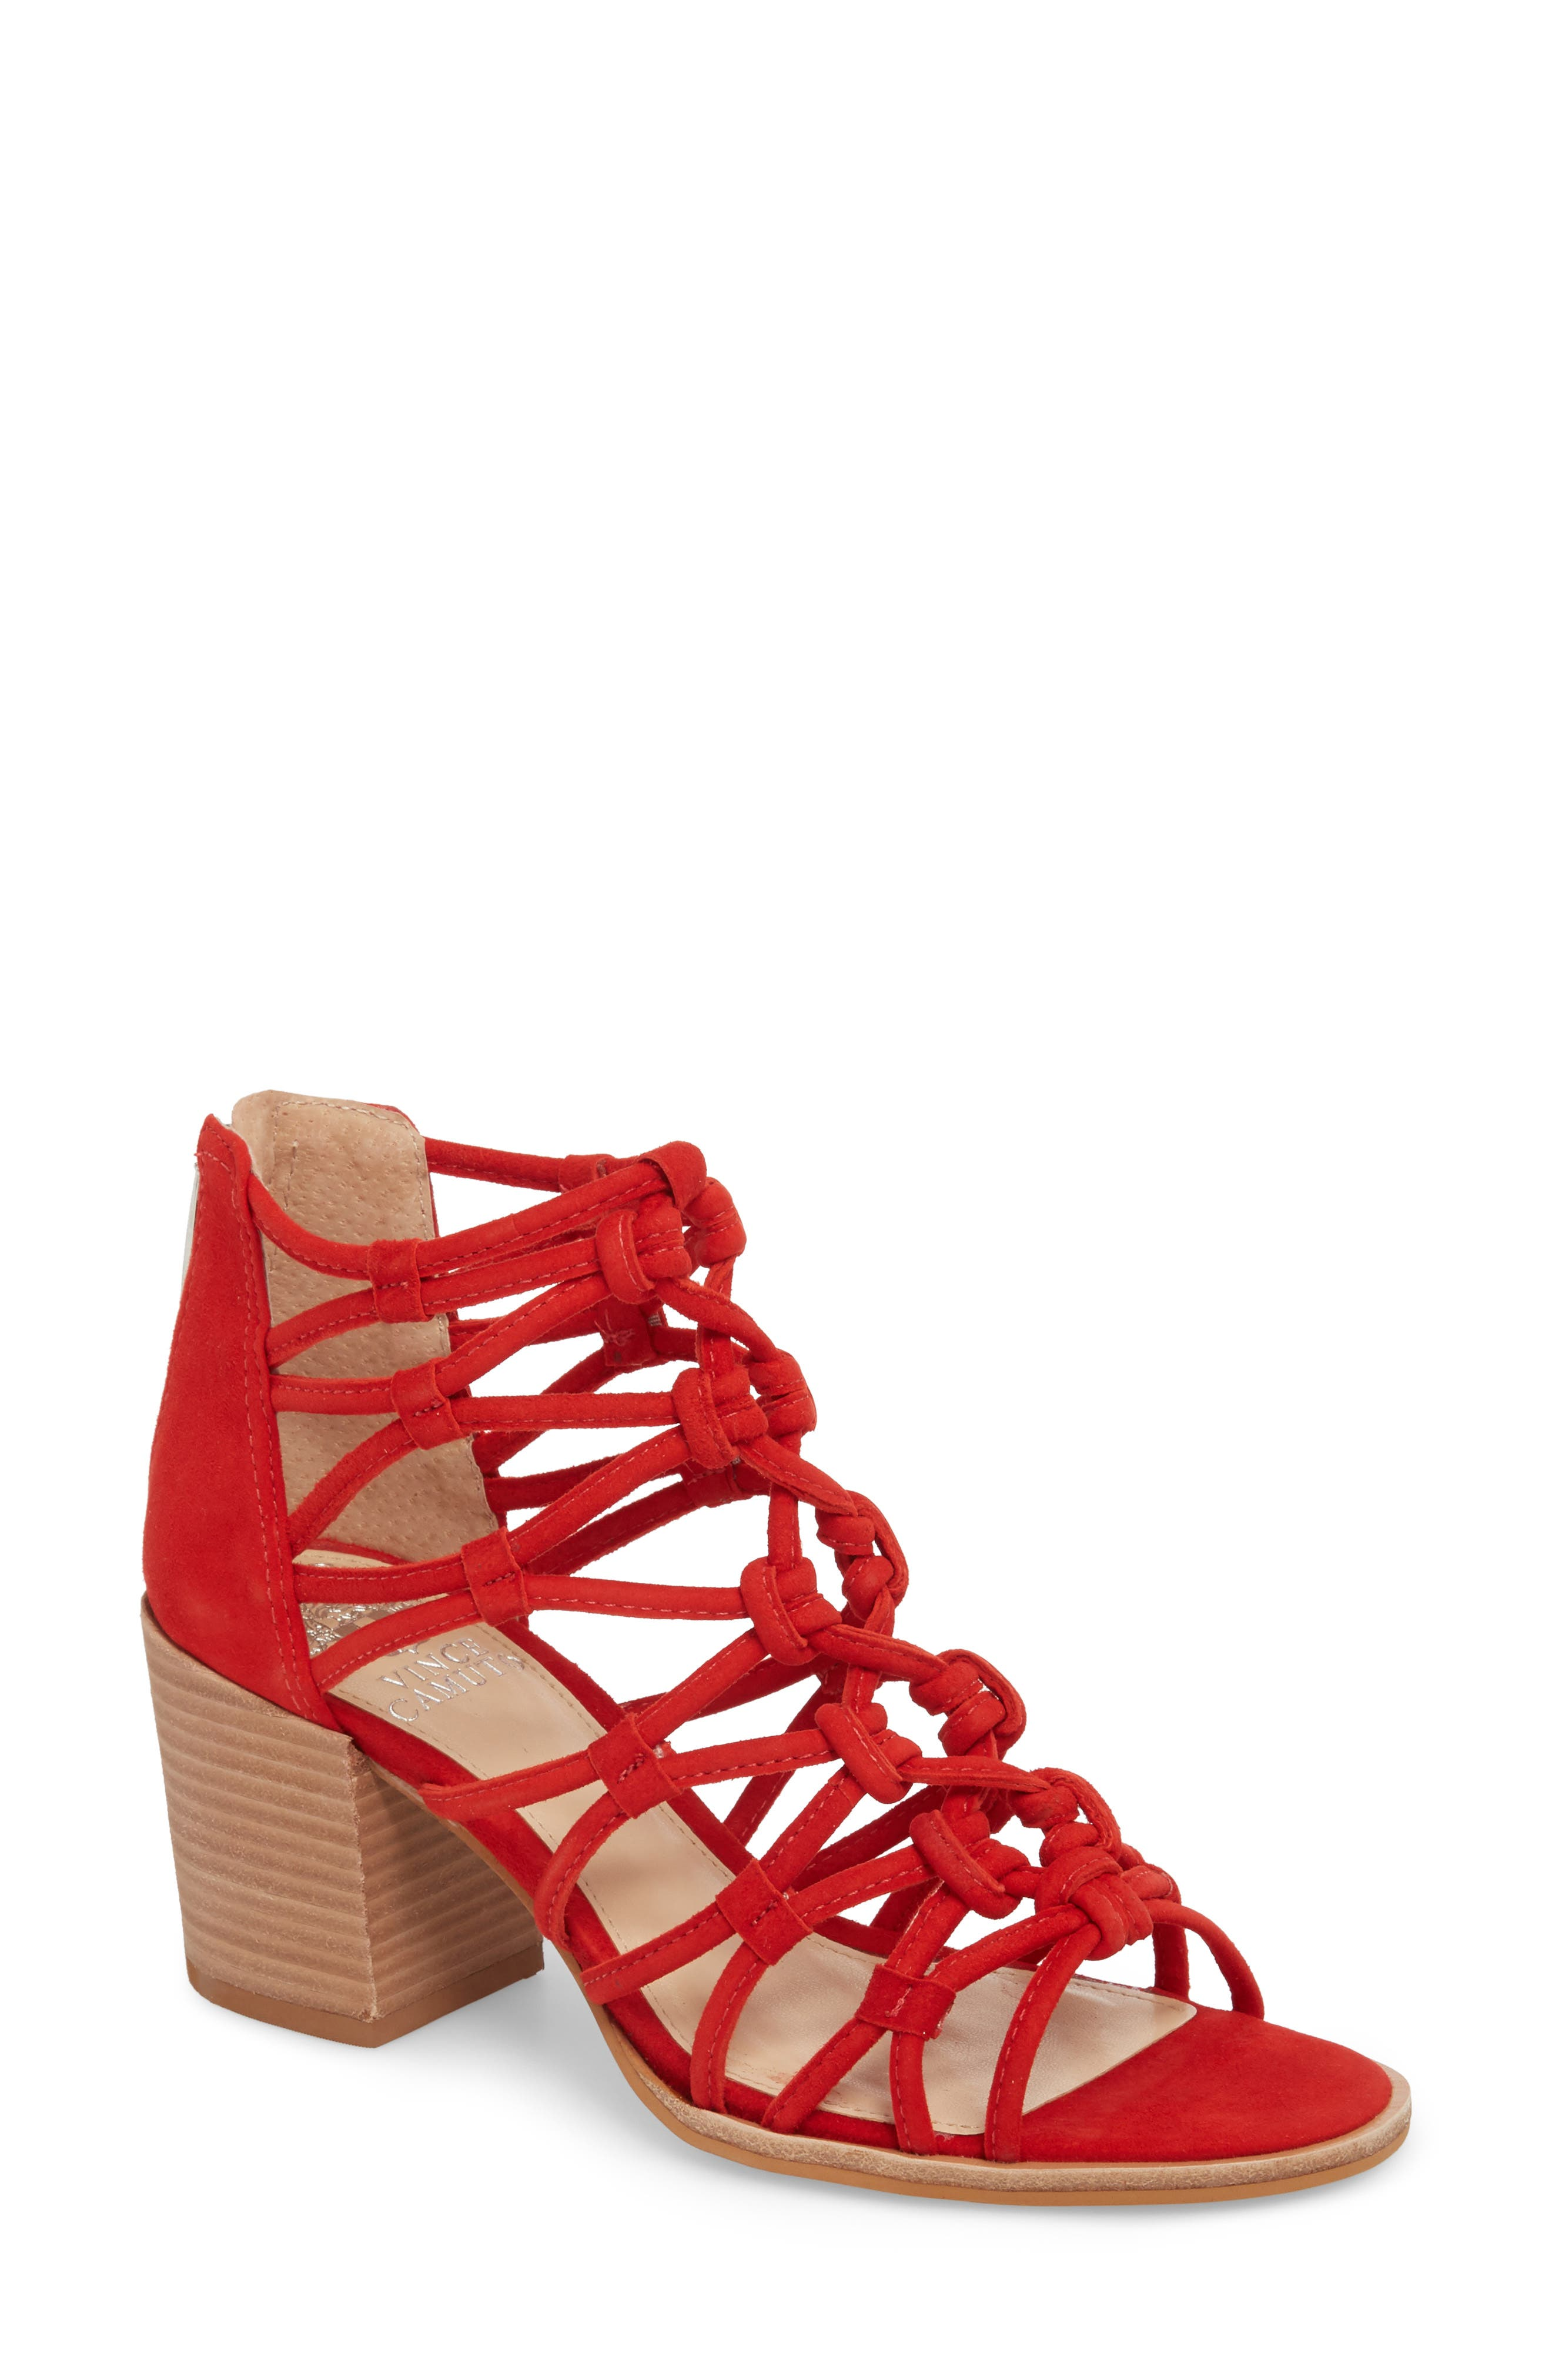 Karika Cage Sandal,                         Main,                         color, Red Hot Rio Suede